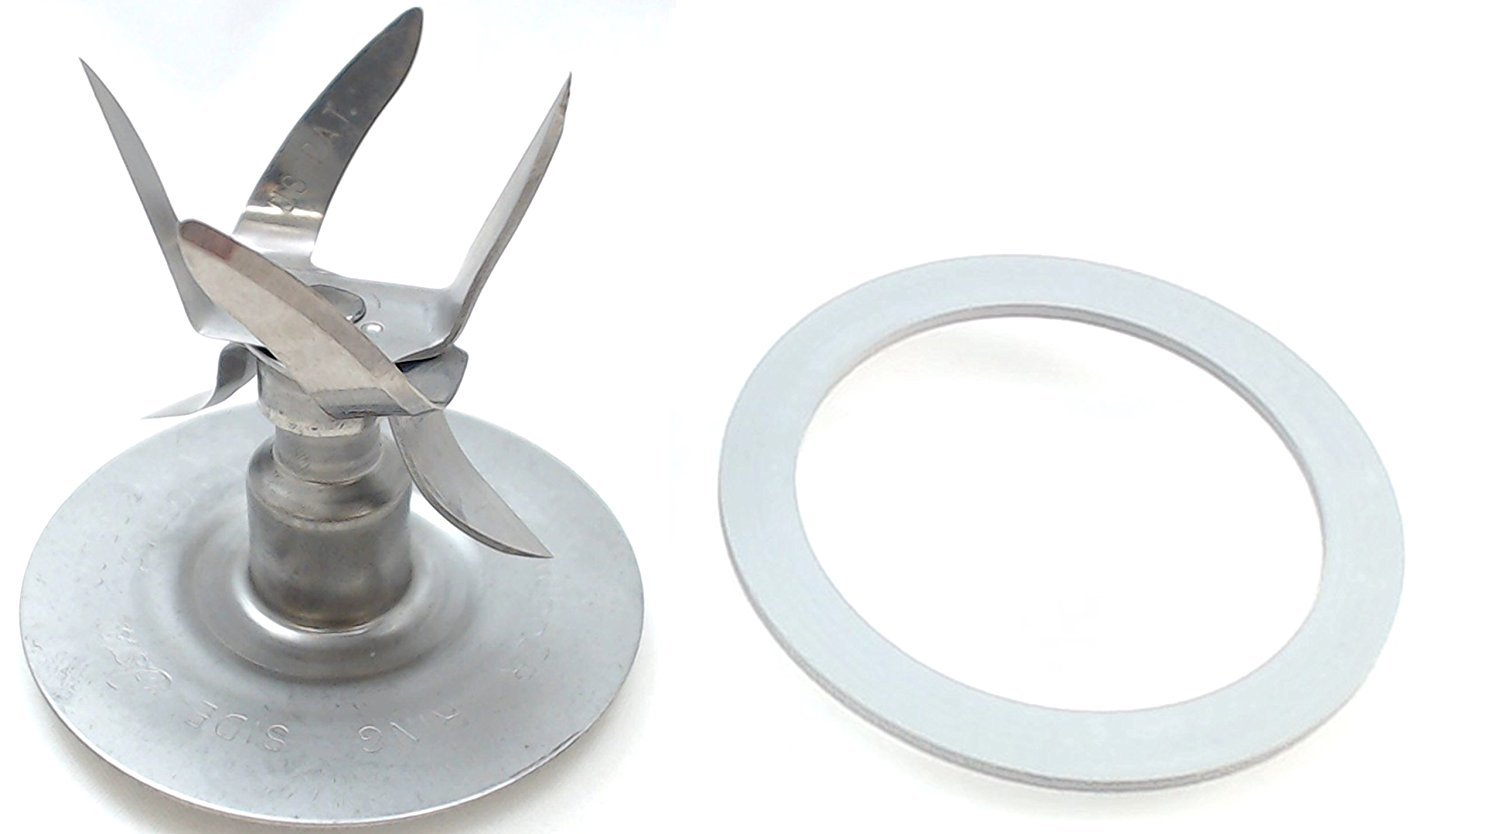 Fusion Blender Blade Cutter with Gasket for Oster 118530-101-000 & 083422-050-000 by Sunbeam (Image #1)